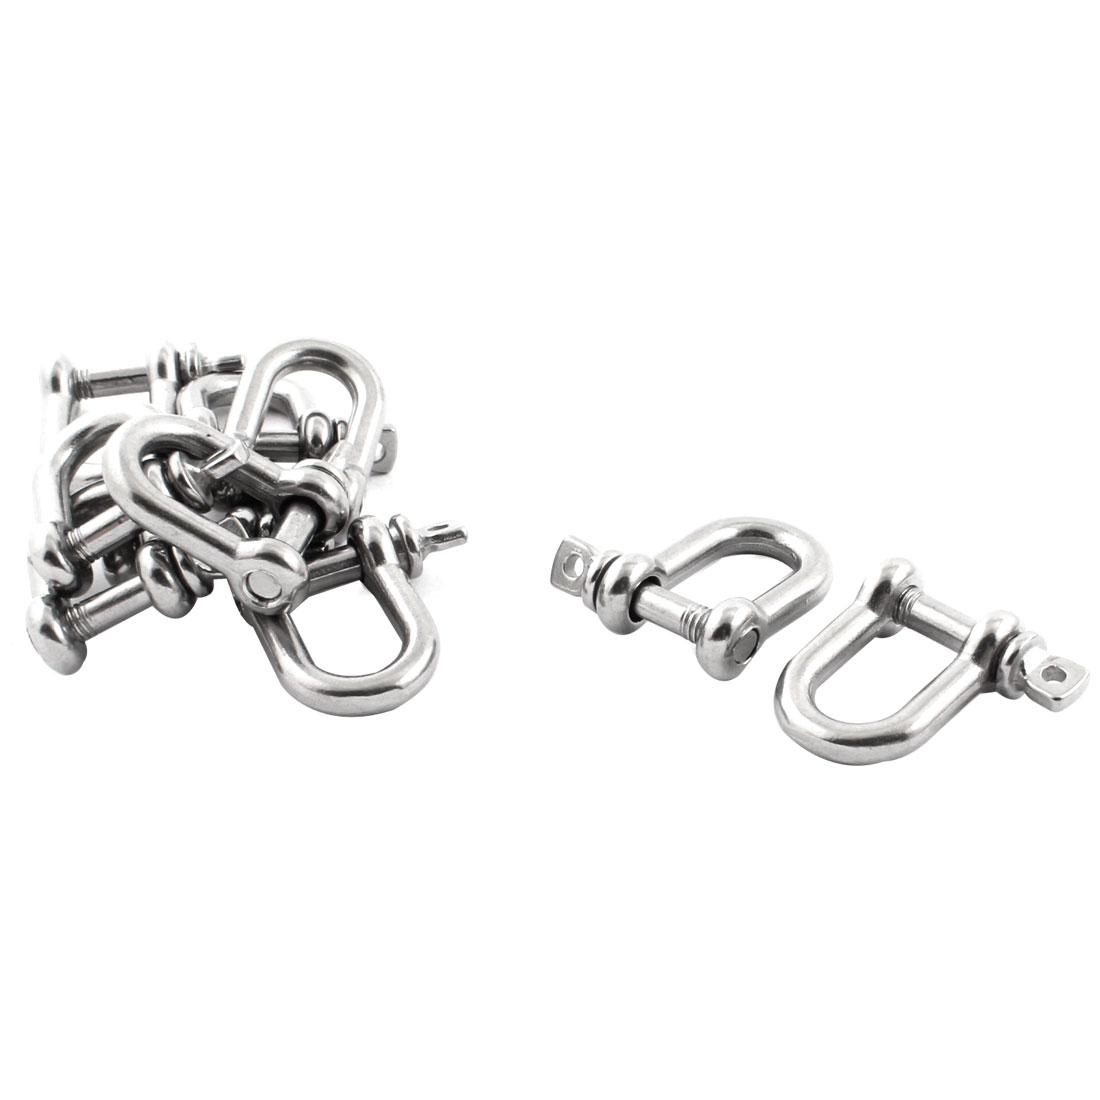 10PCS Silver Tone Stainless Steel M5 Thread Wire Rope Fastener D Shackles